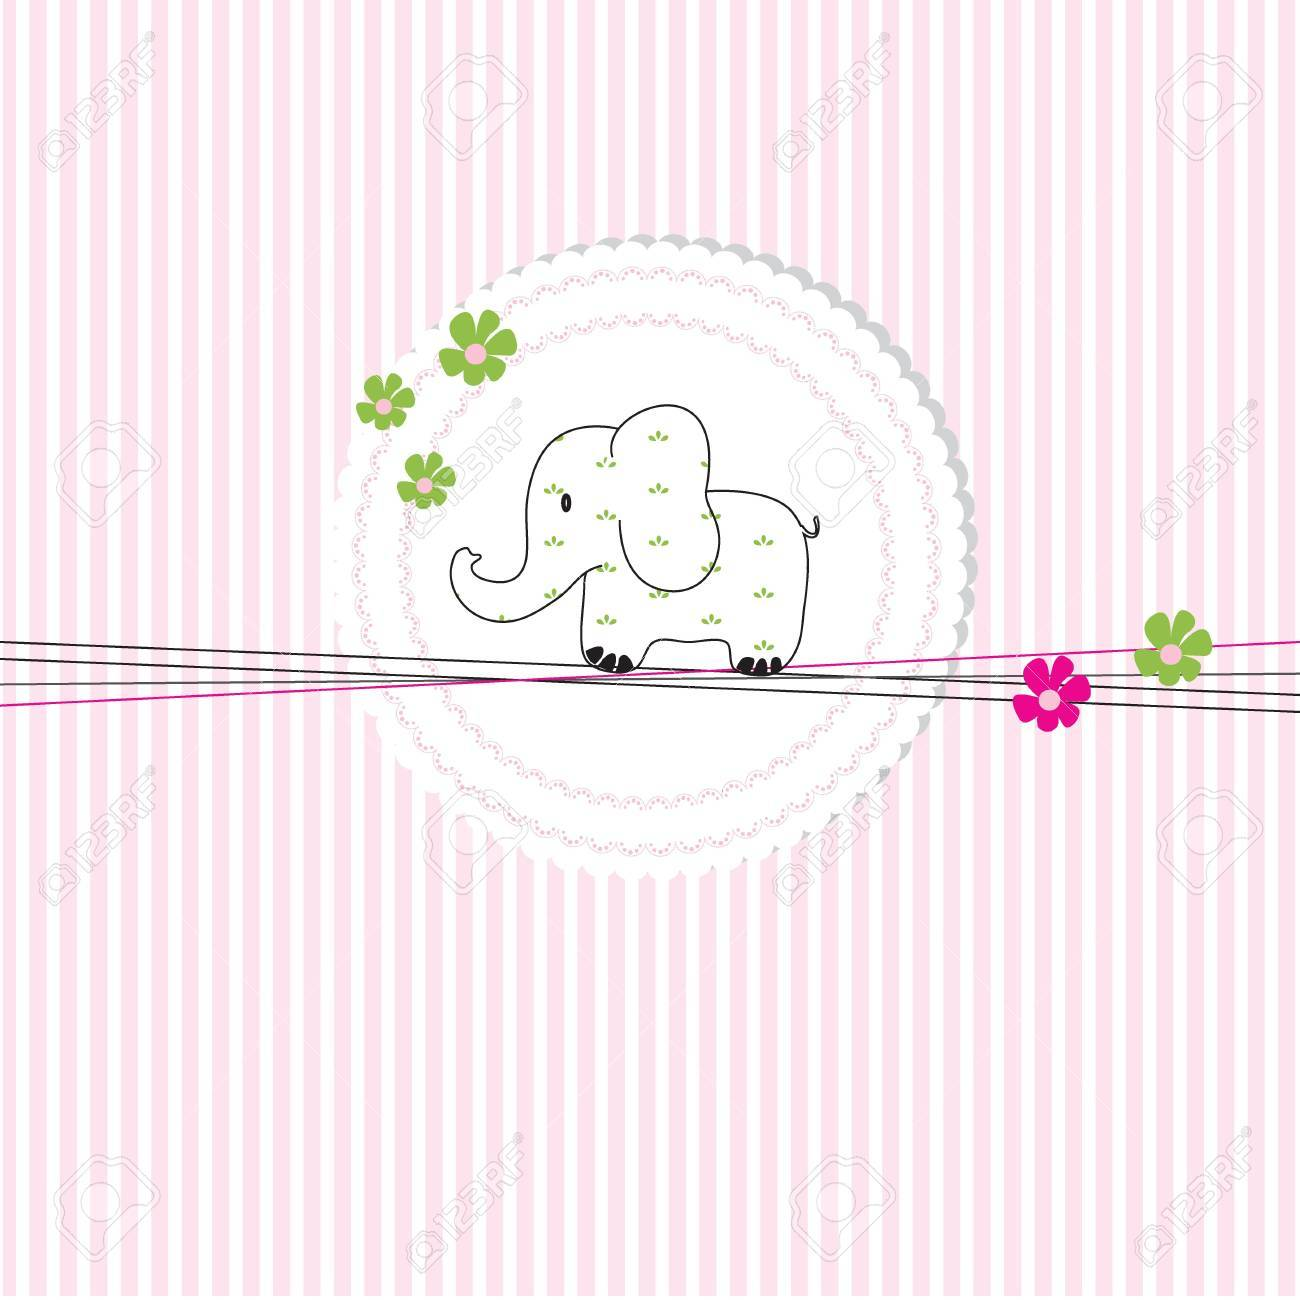 Cute baby card on birthday or shower Stock Vector - 11586503